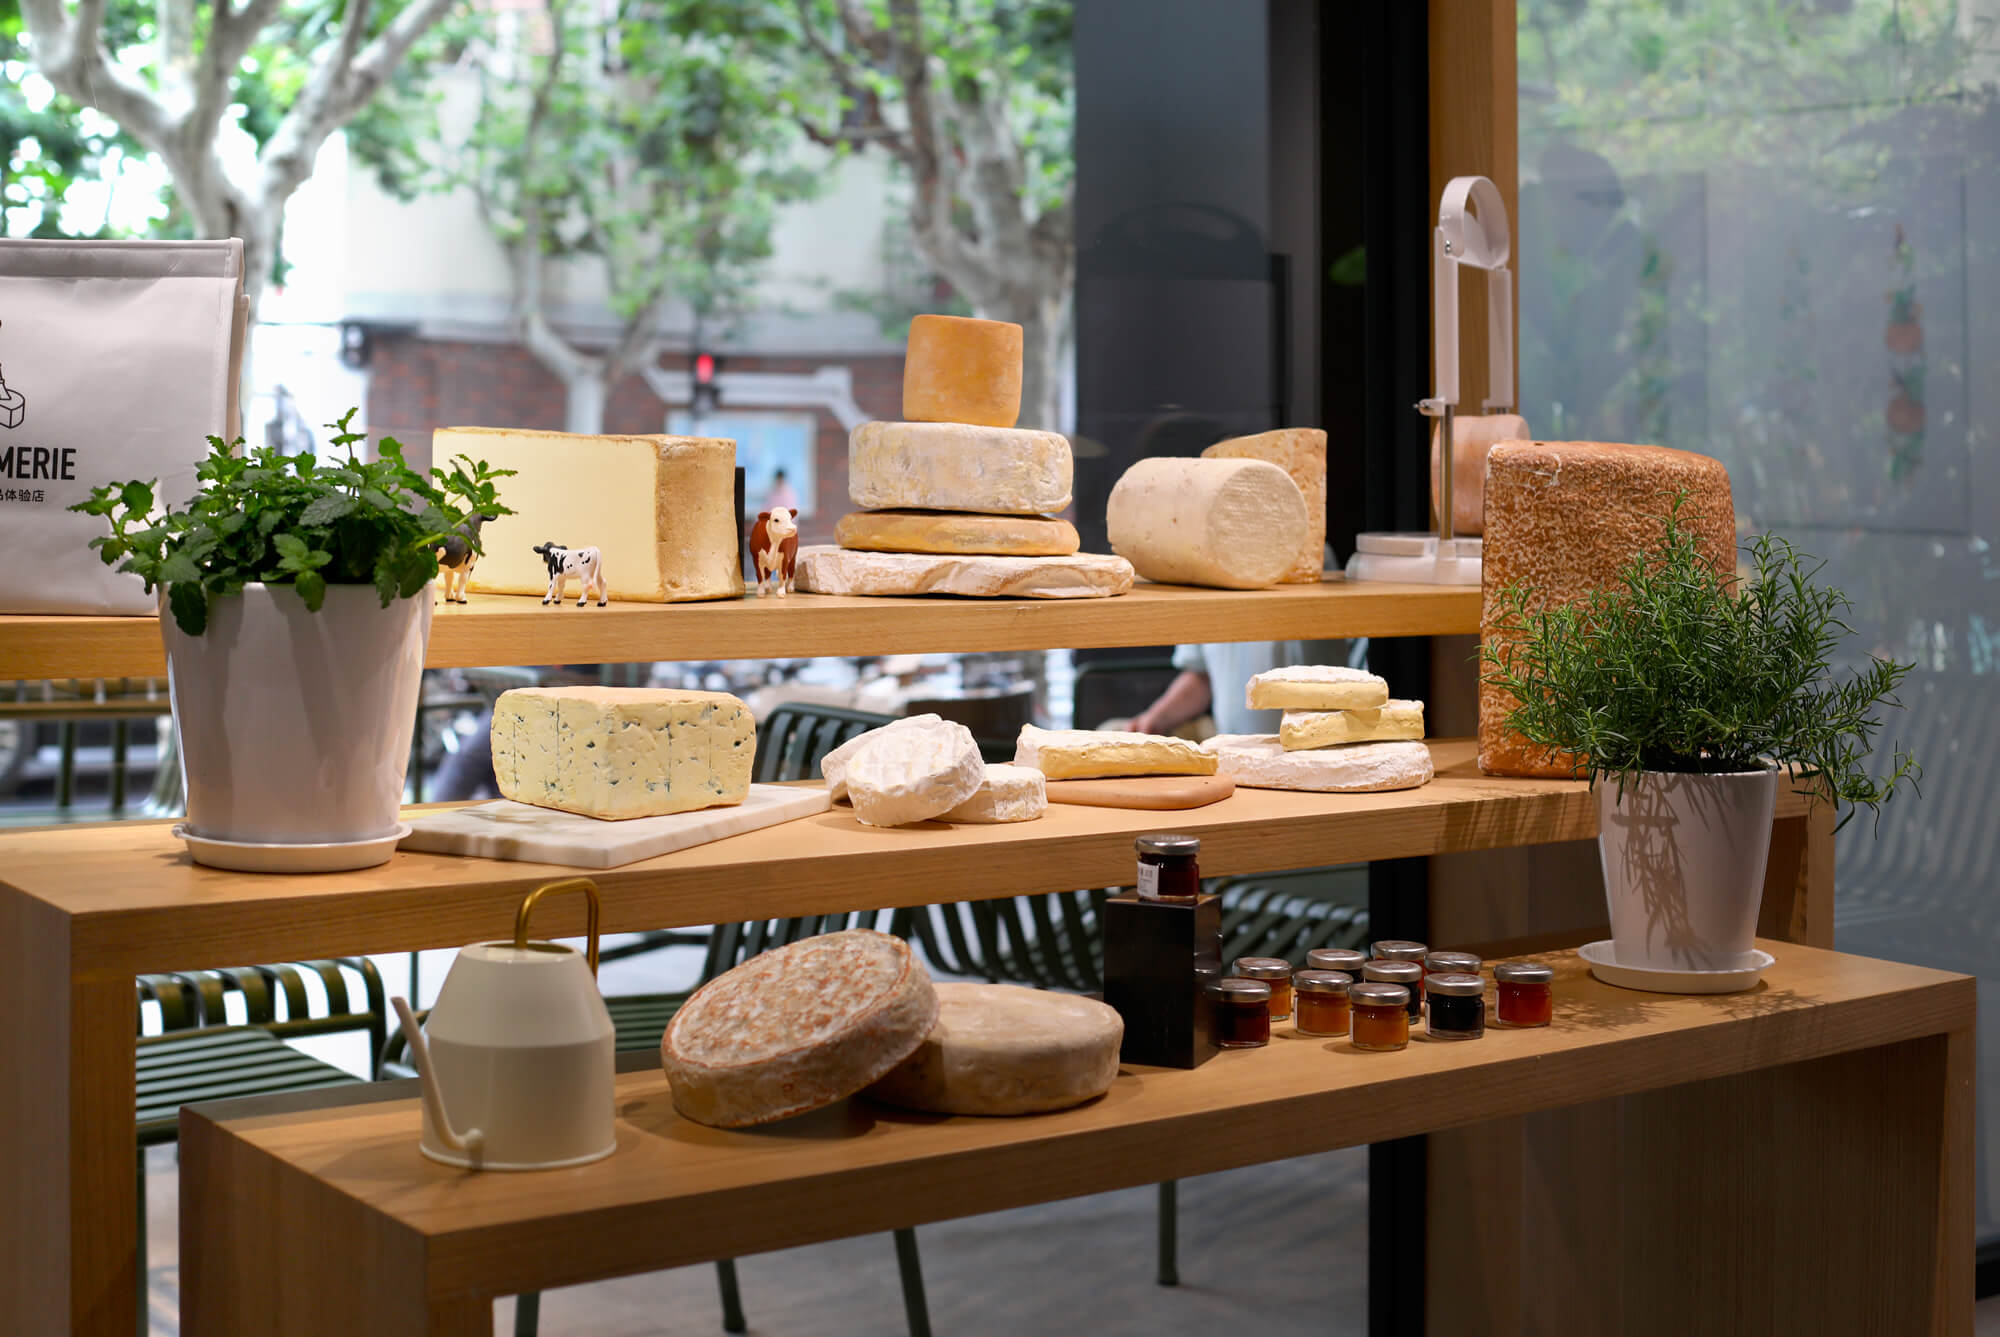 la-cremerie-concept-store-retail-design-display-cheese-ichetkar